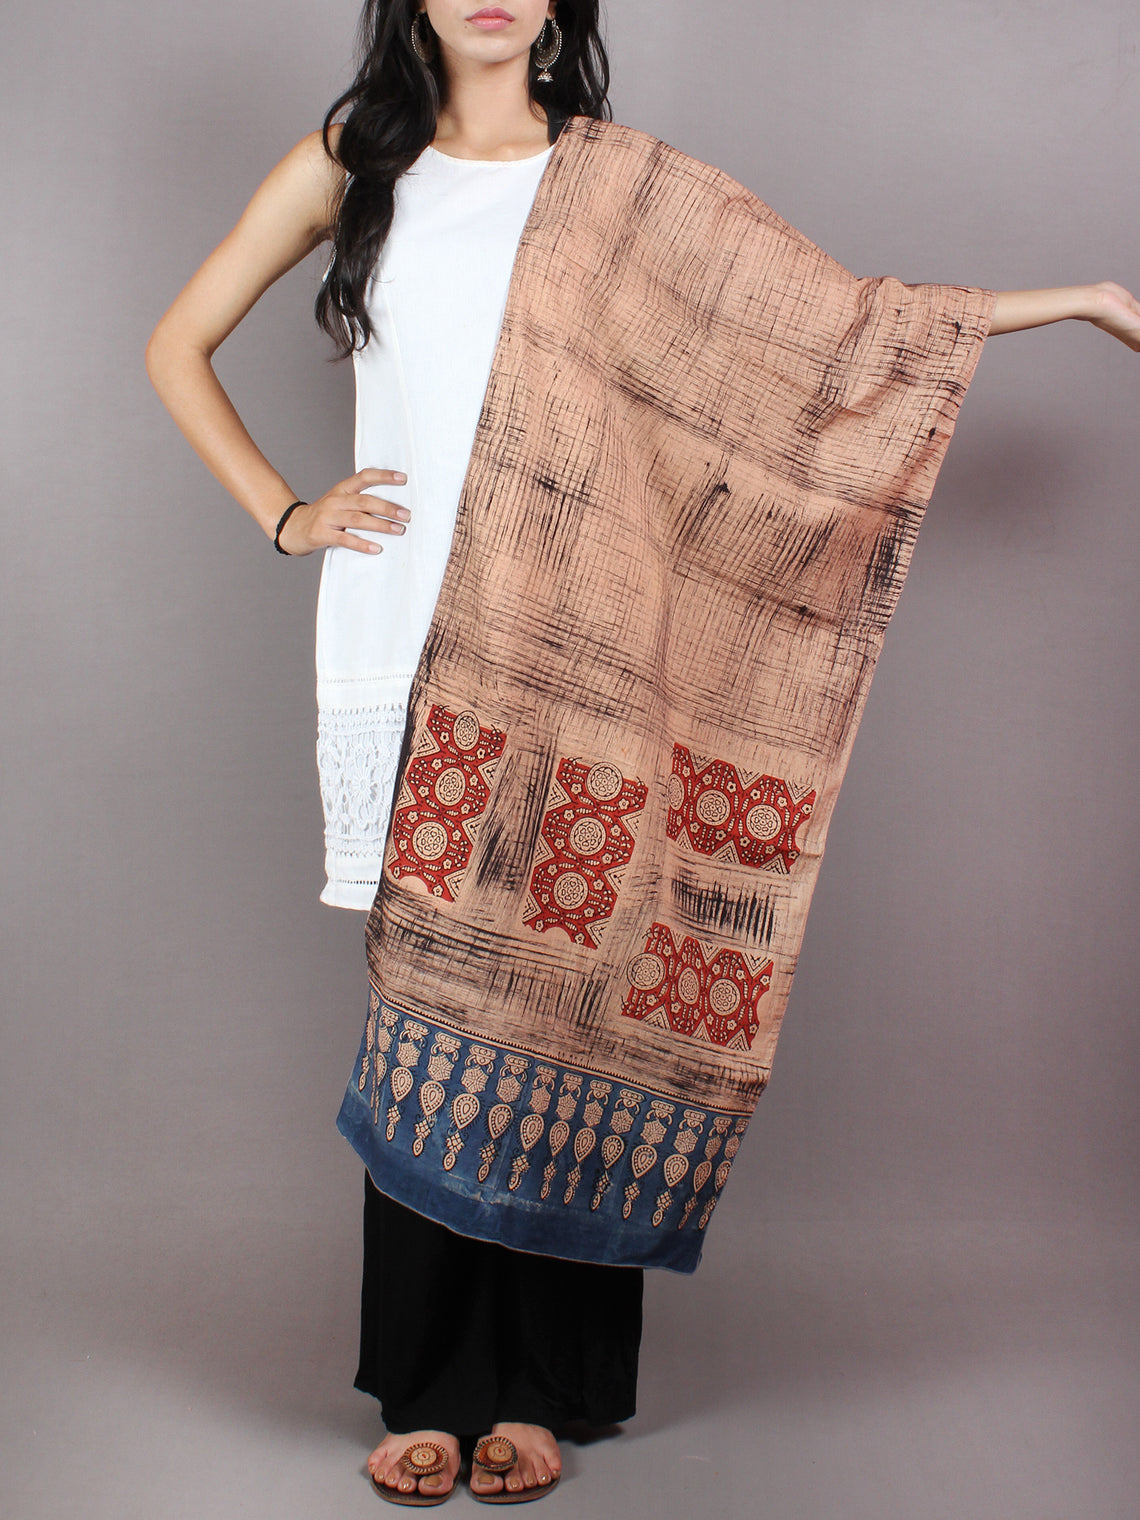 Salmon Pink Red Black Blue Mughal Nakashi Ajrakh Hand Block Printed Cotton Stole - S6317044